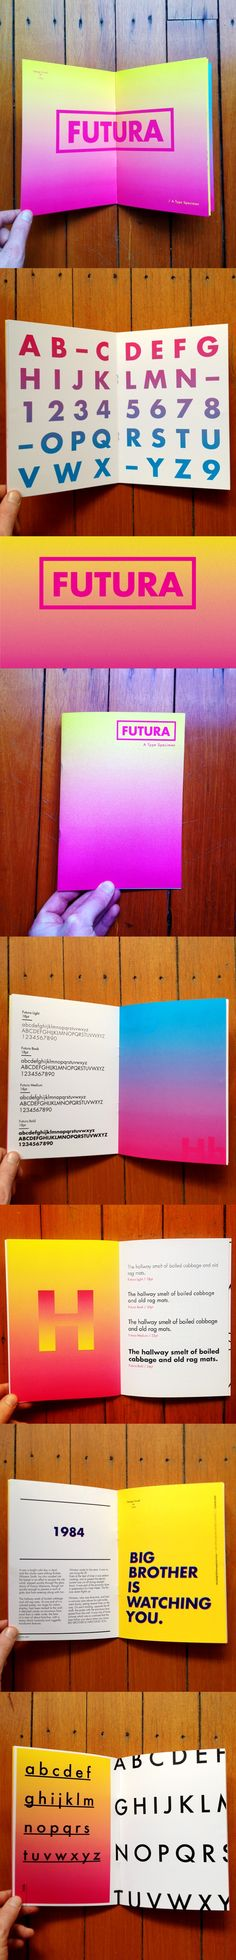 Futura Type Specimen  Wow- not overly fussy, but the use of colour here just draws the eye in.  Great use of gradient.